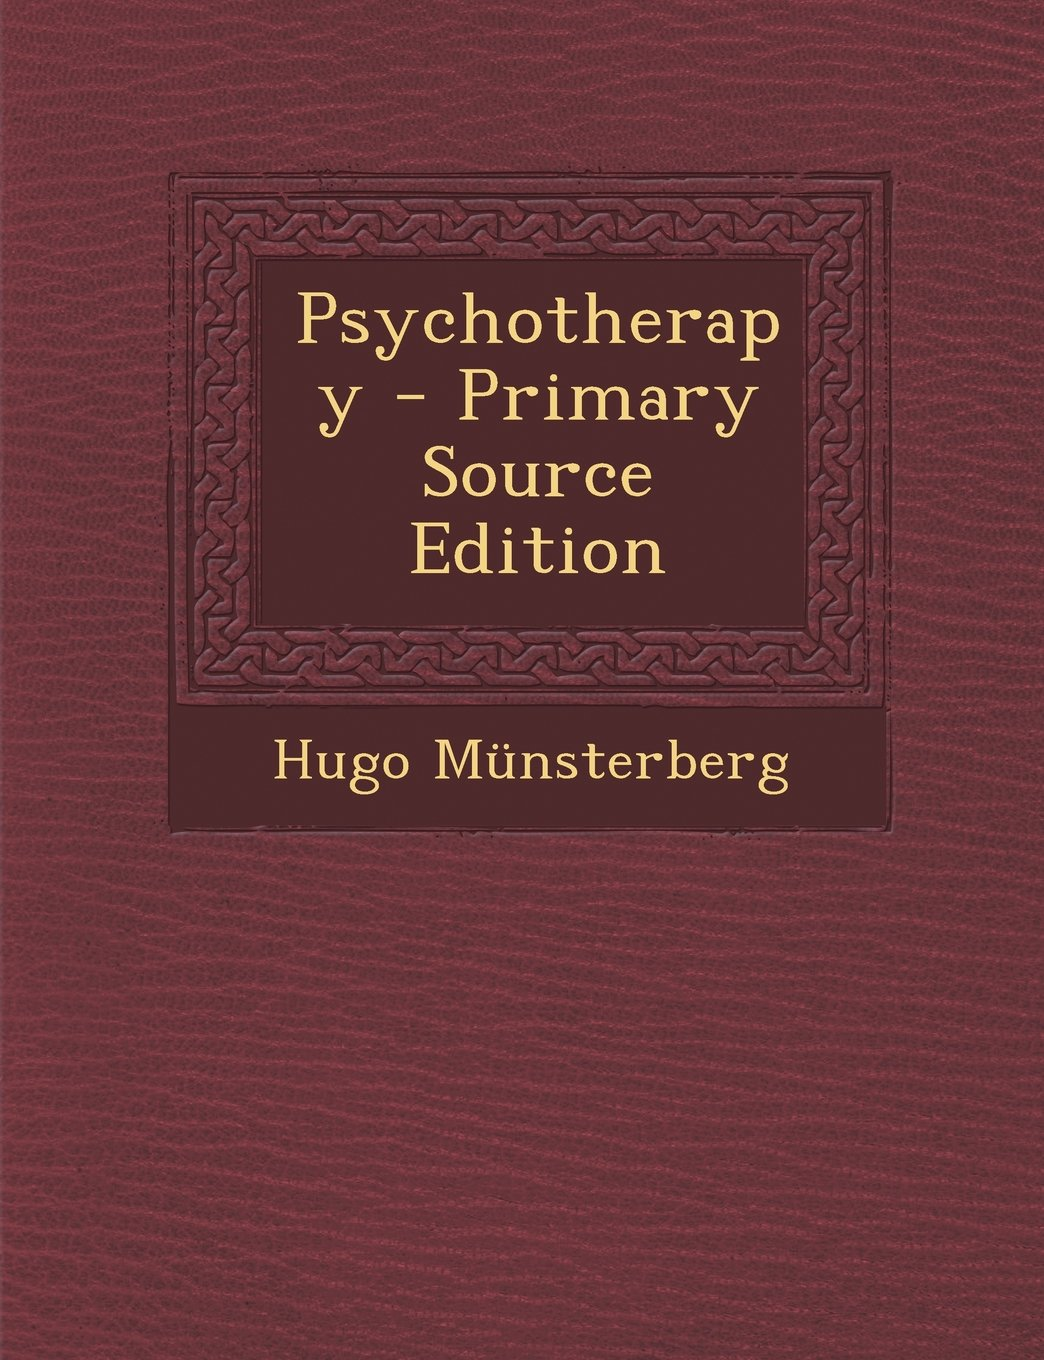 Psychotherapy - Primary Source Edition ebook